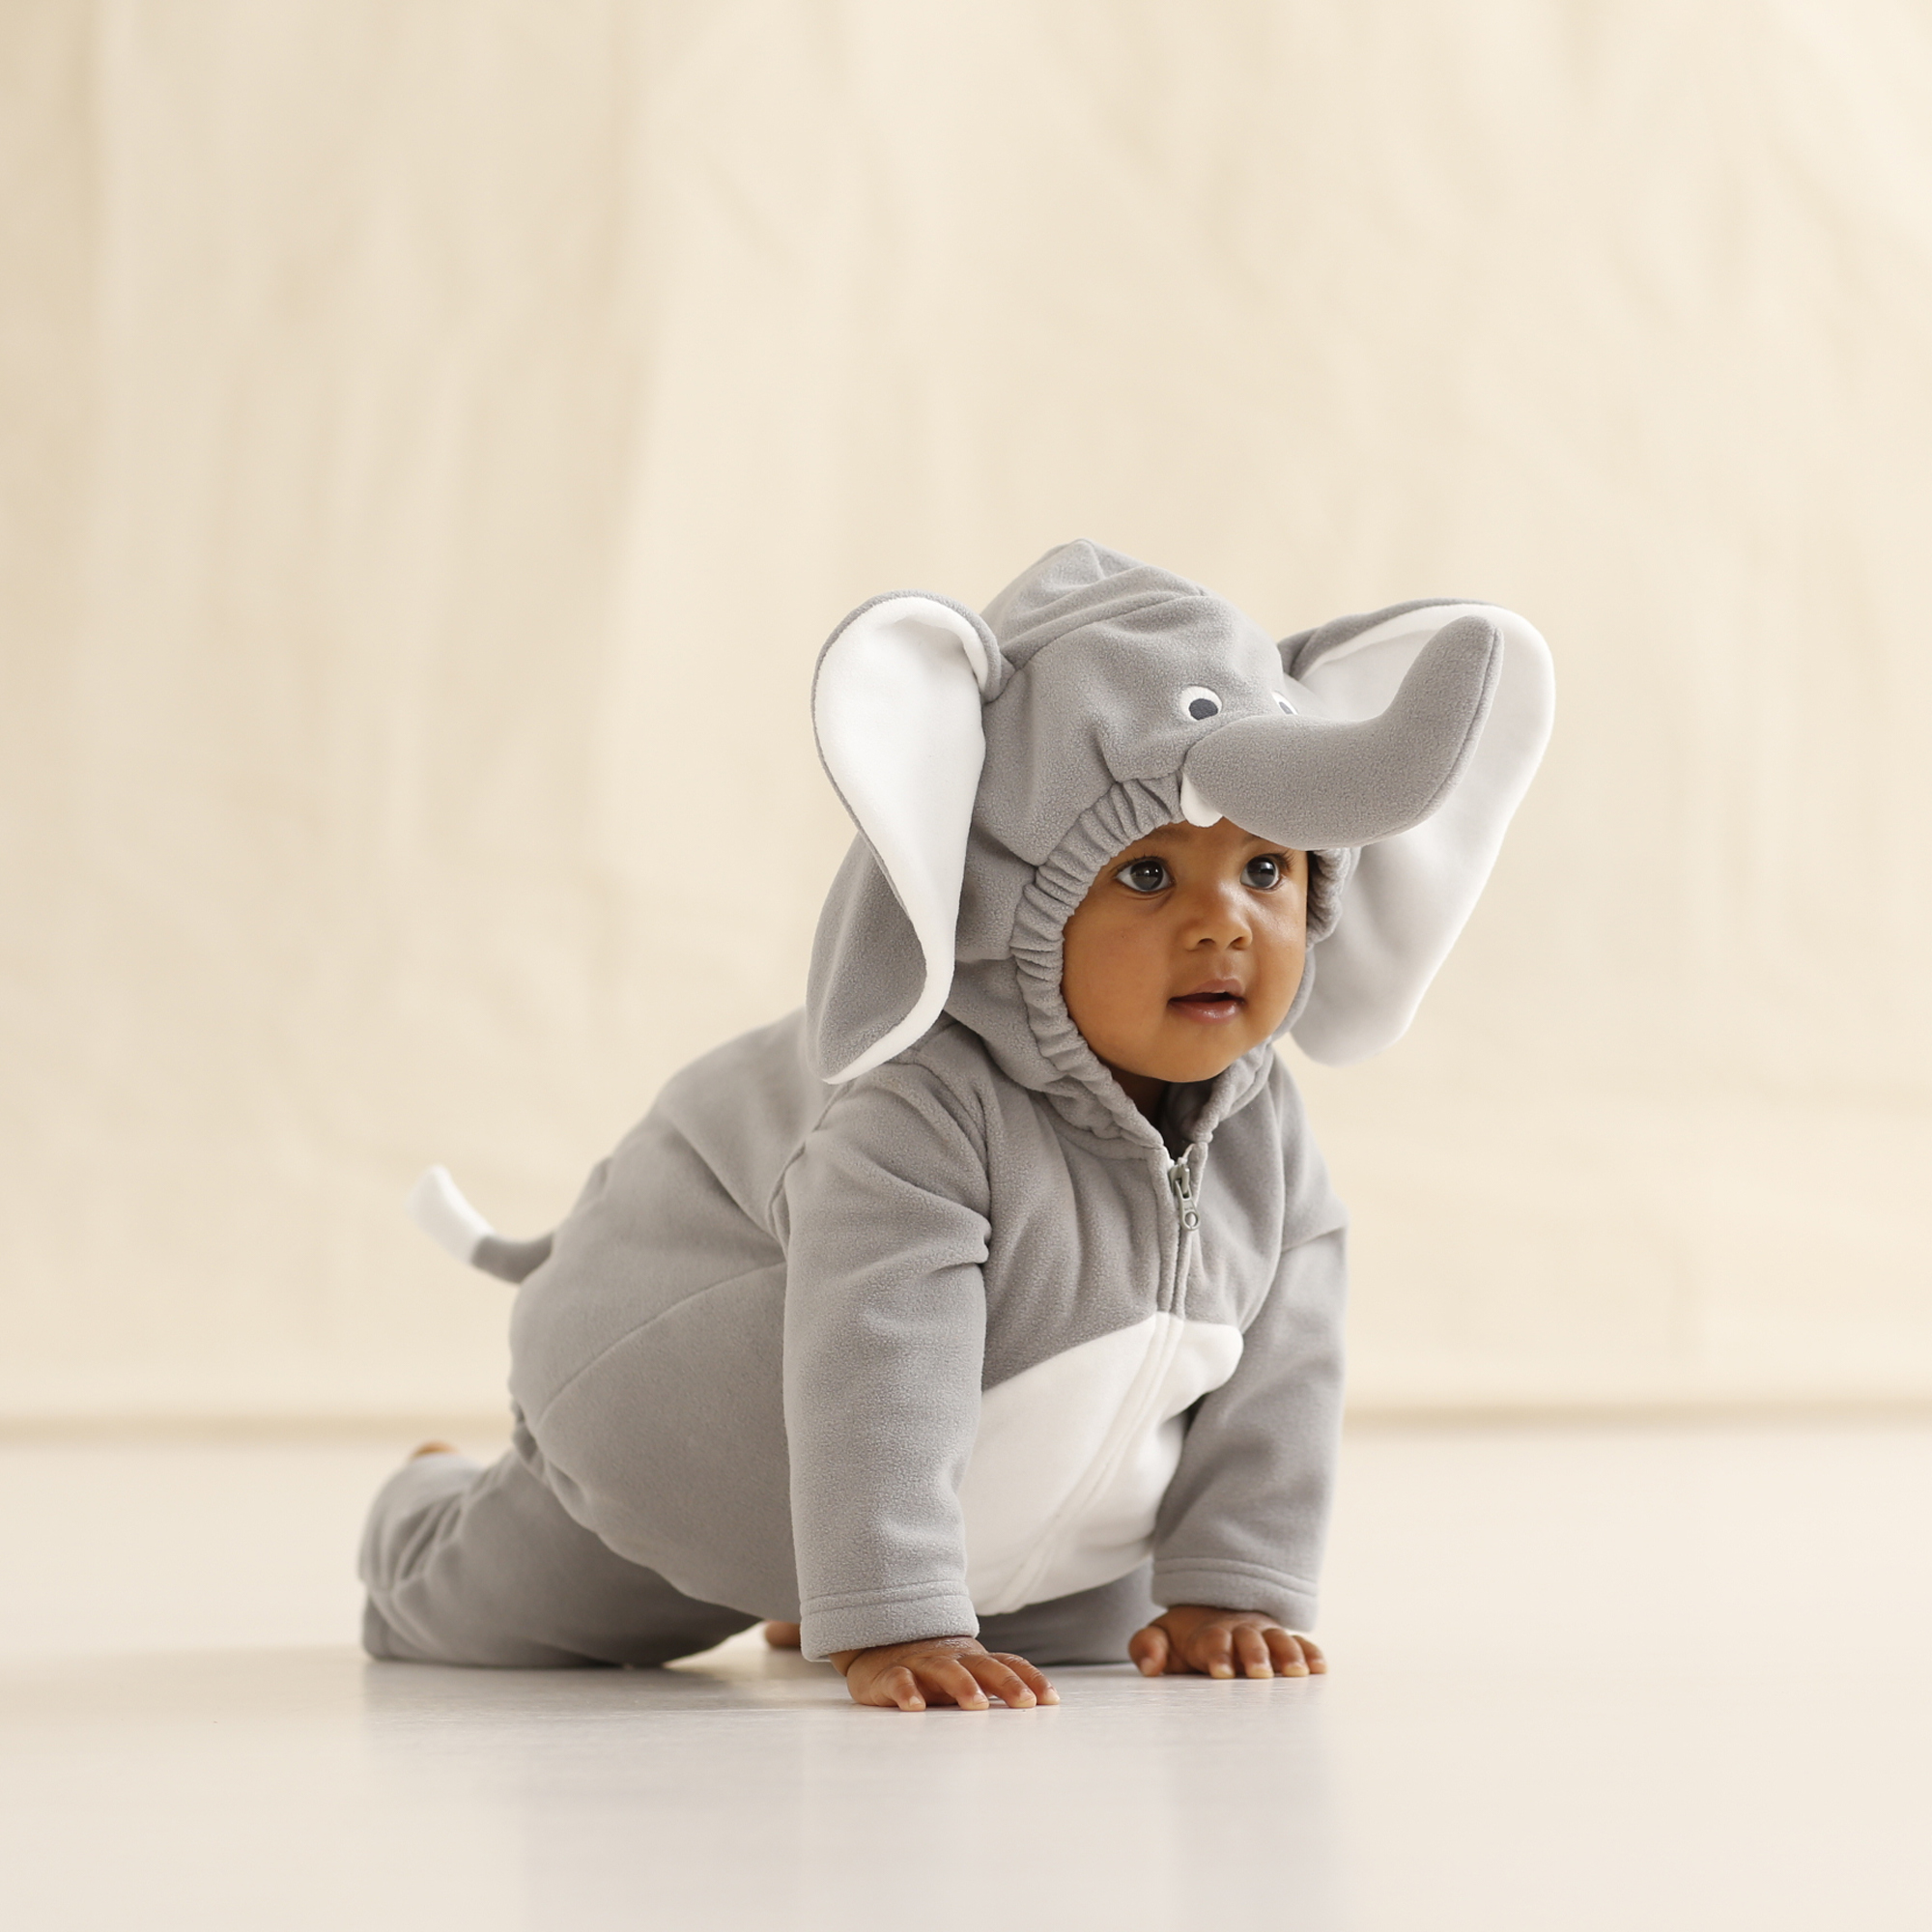 of elephants and divine mercy, or how i'm justifying my child's